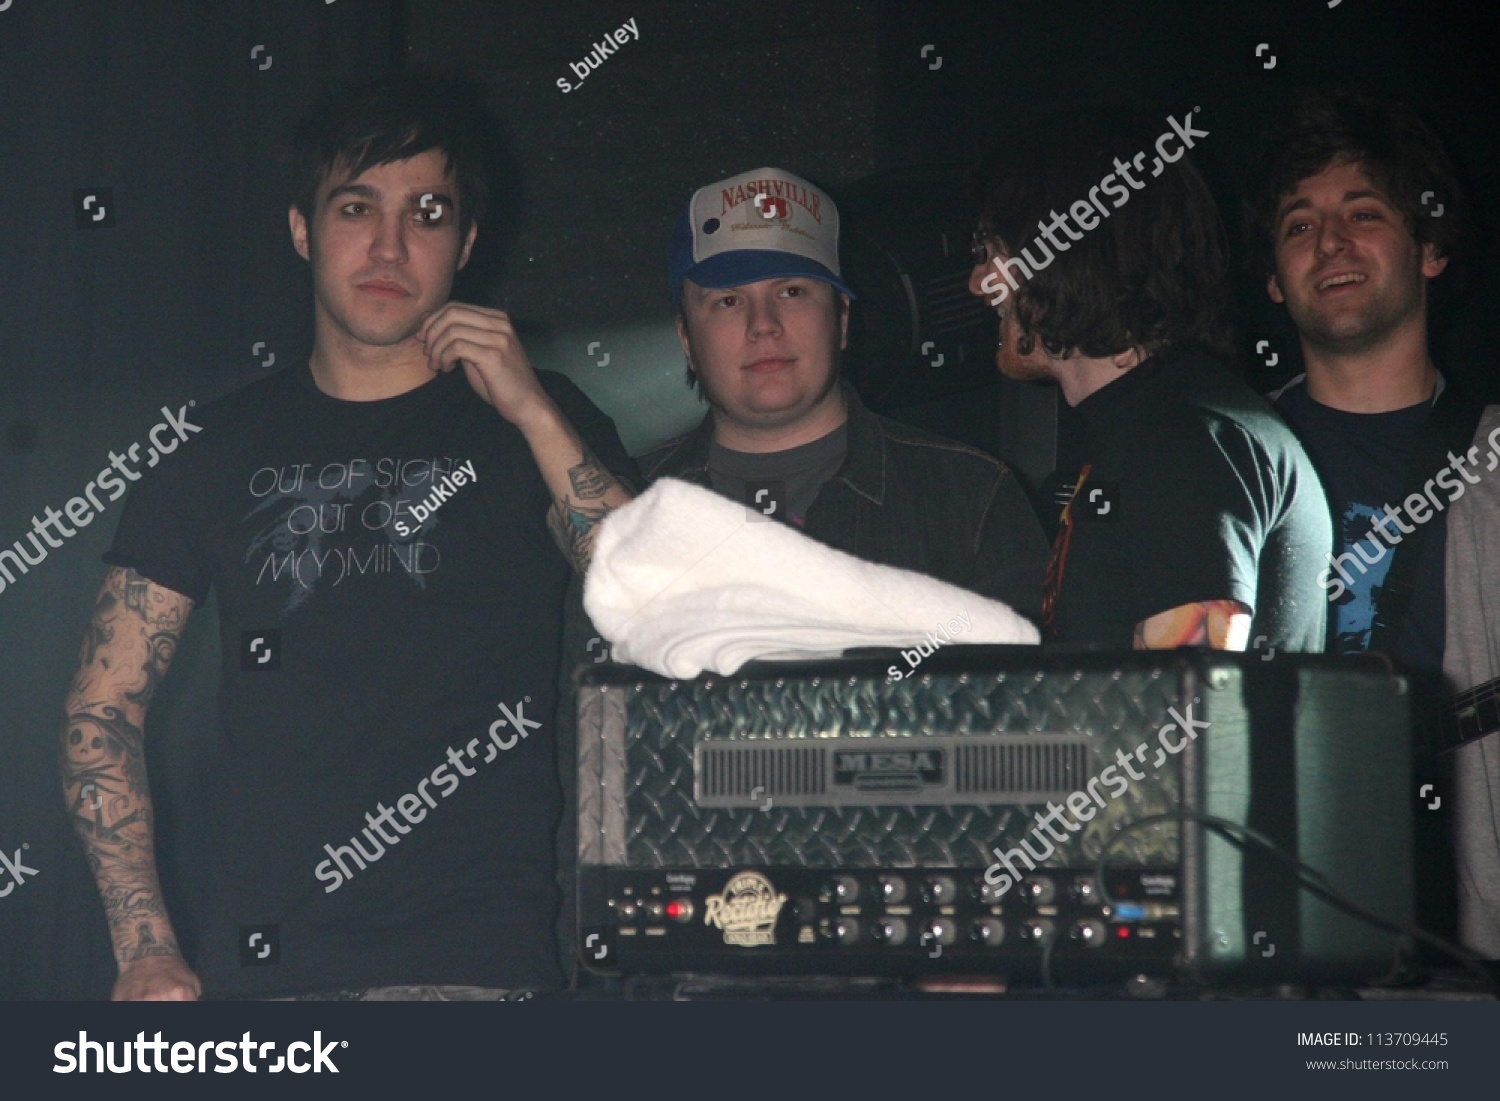 Fall Out Boy Performing Live American Honda Motor Co Inc Torrance Ca 01 05 07 Stock Photo